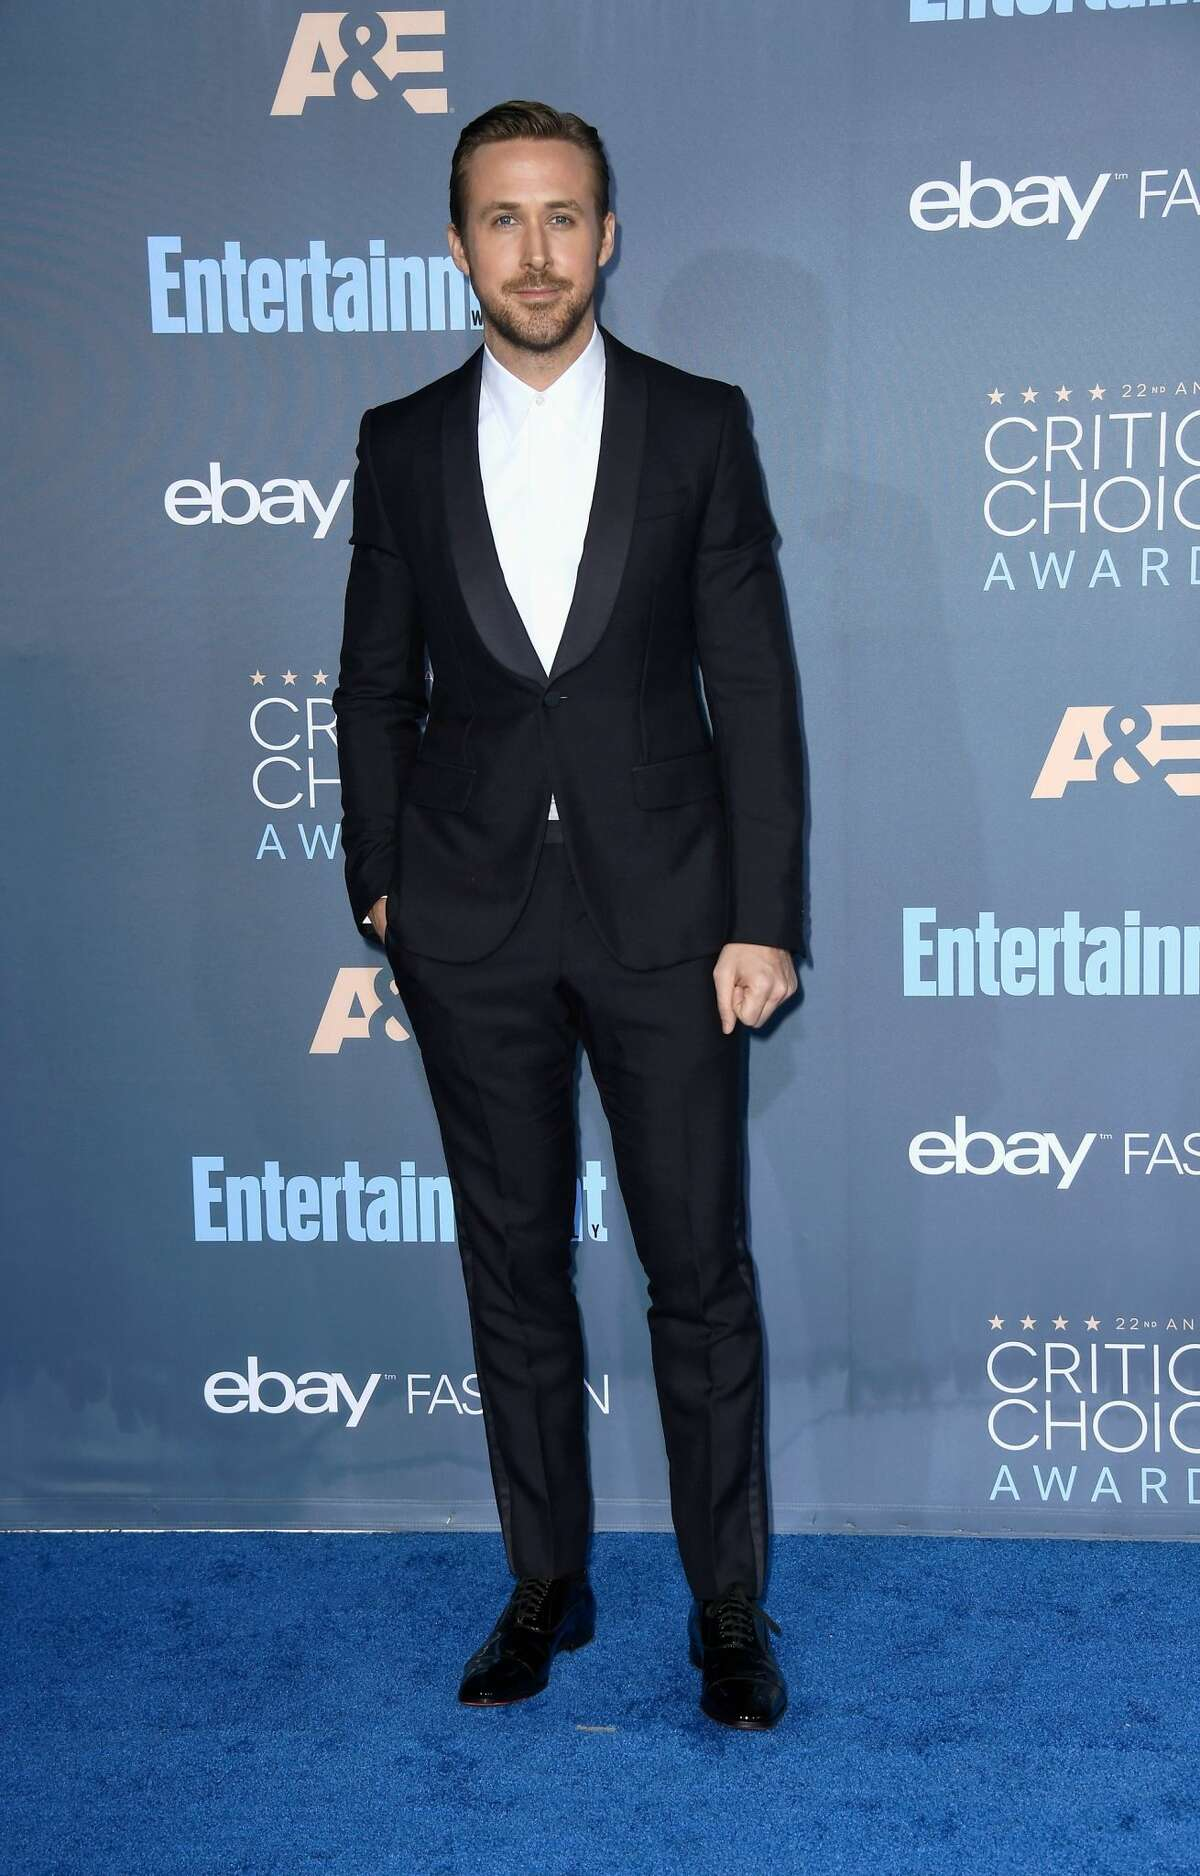 SANTA MONICA, CA - DECEMBER 11: Actor Ryan Gosling attends The 22nd Annual Critics' Choice Awards at Barker Hangar on December 11, 2016 in Santa Monica, California. (Photo by Frazer Harrison/Getty Images)